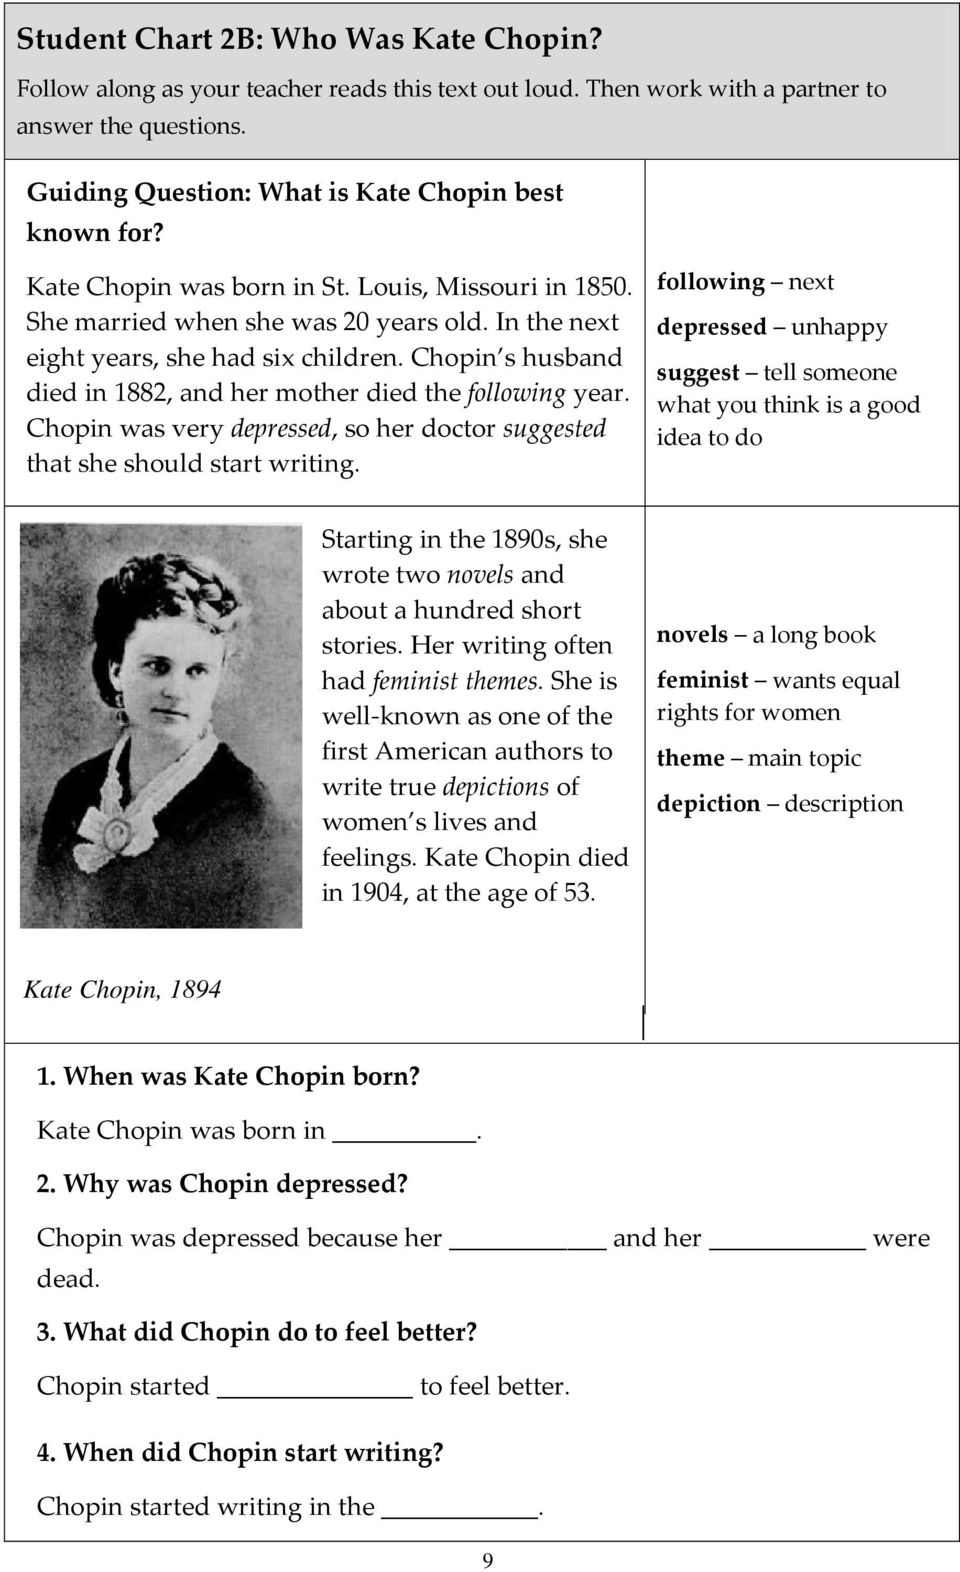 kate chopin feminist writer